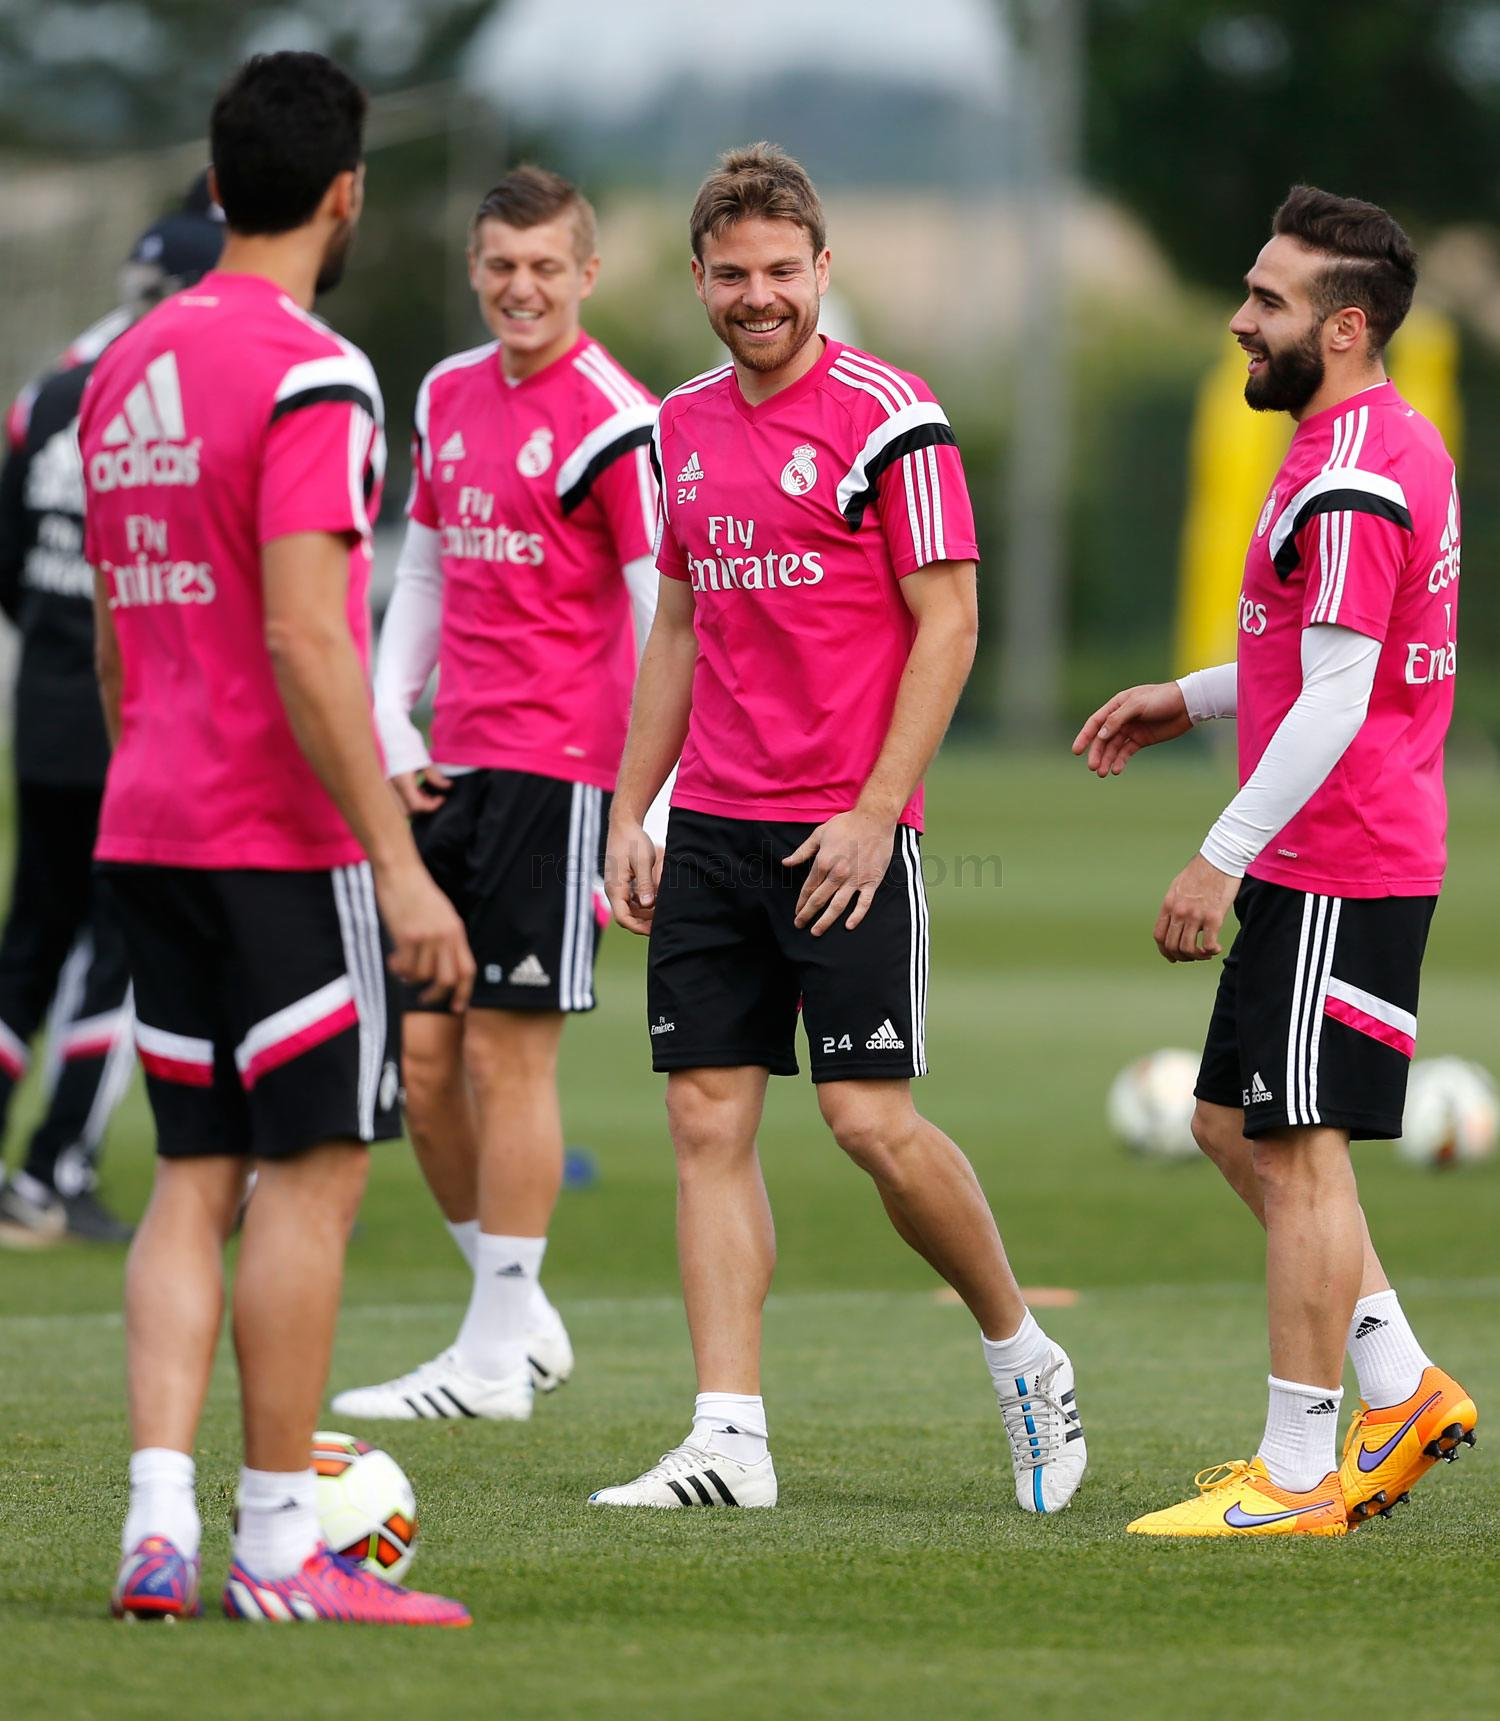 Real Madrid - Entrenamiento del Real Madrid - 25-04-2015